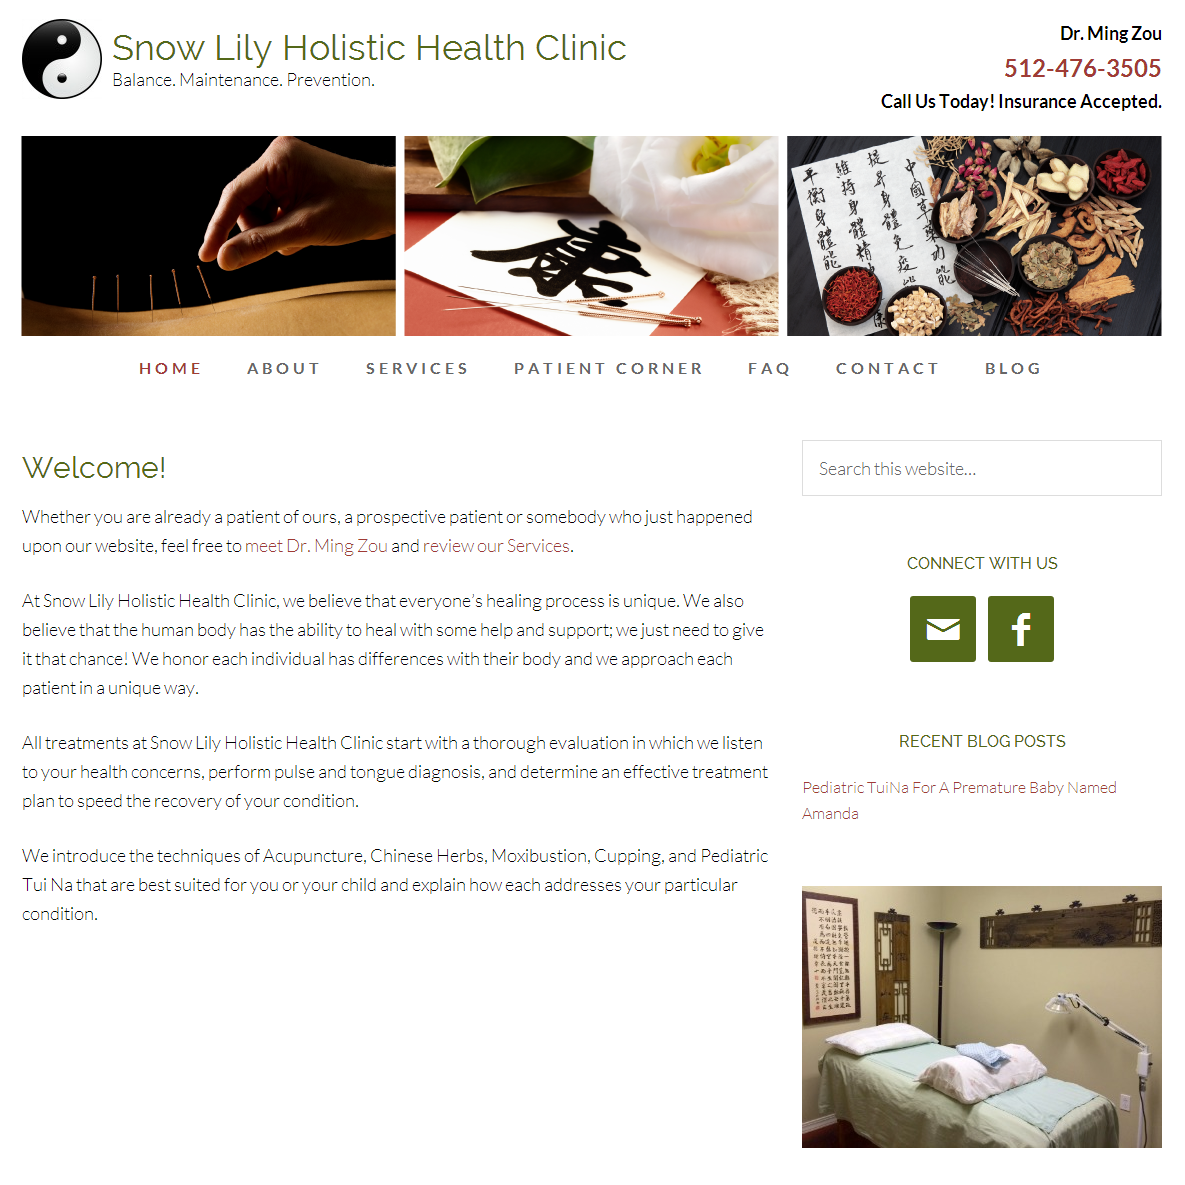 Snow Lily Holistic Health Clinic